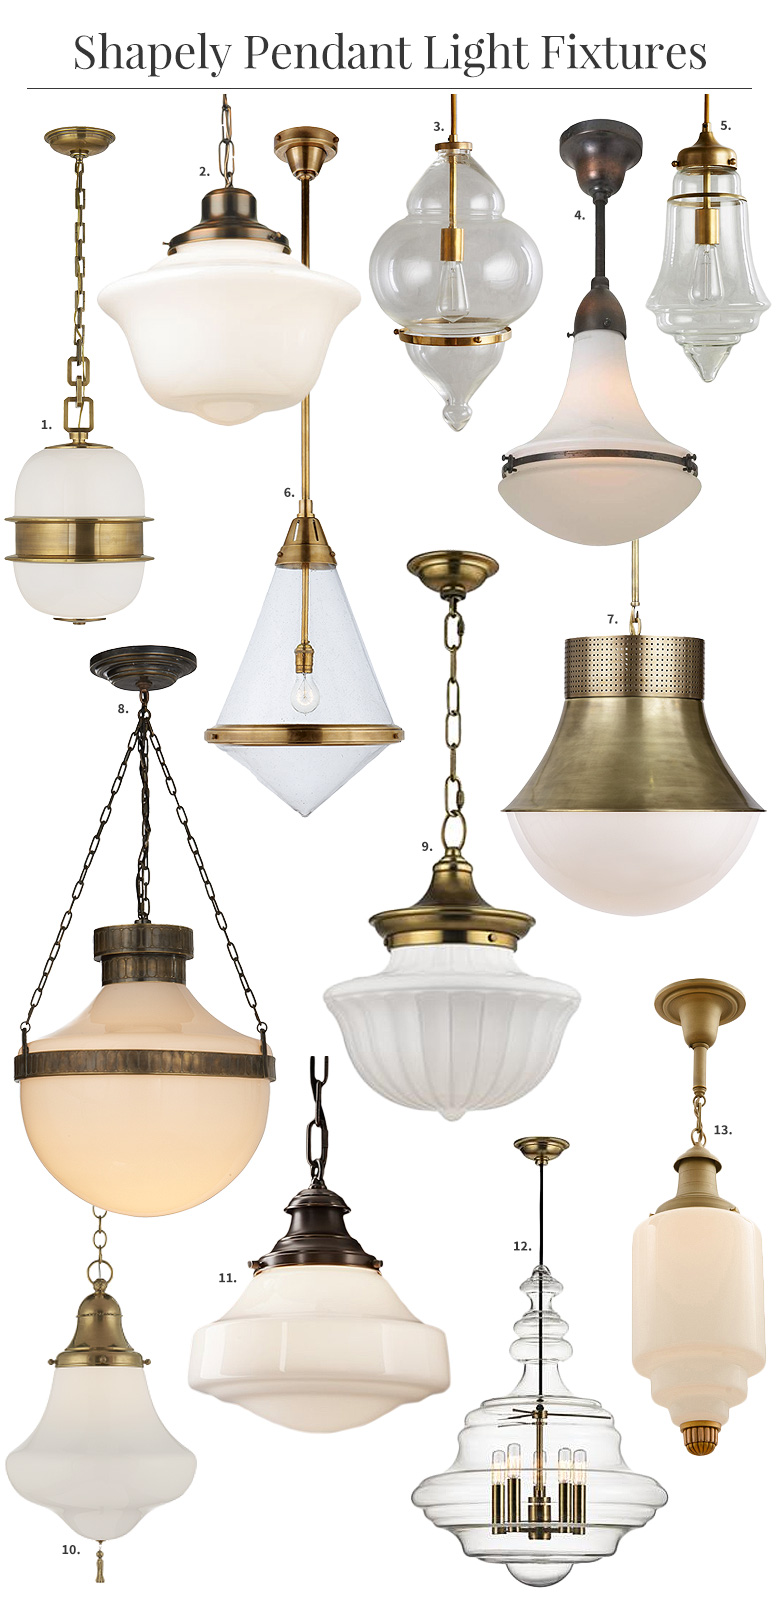 Shapely Glass Pendant Light Fixtures | Making it Lovely